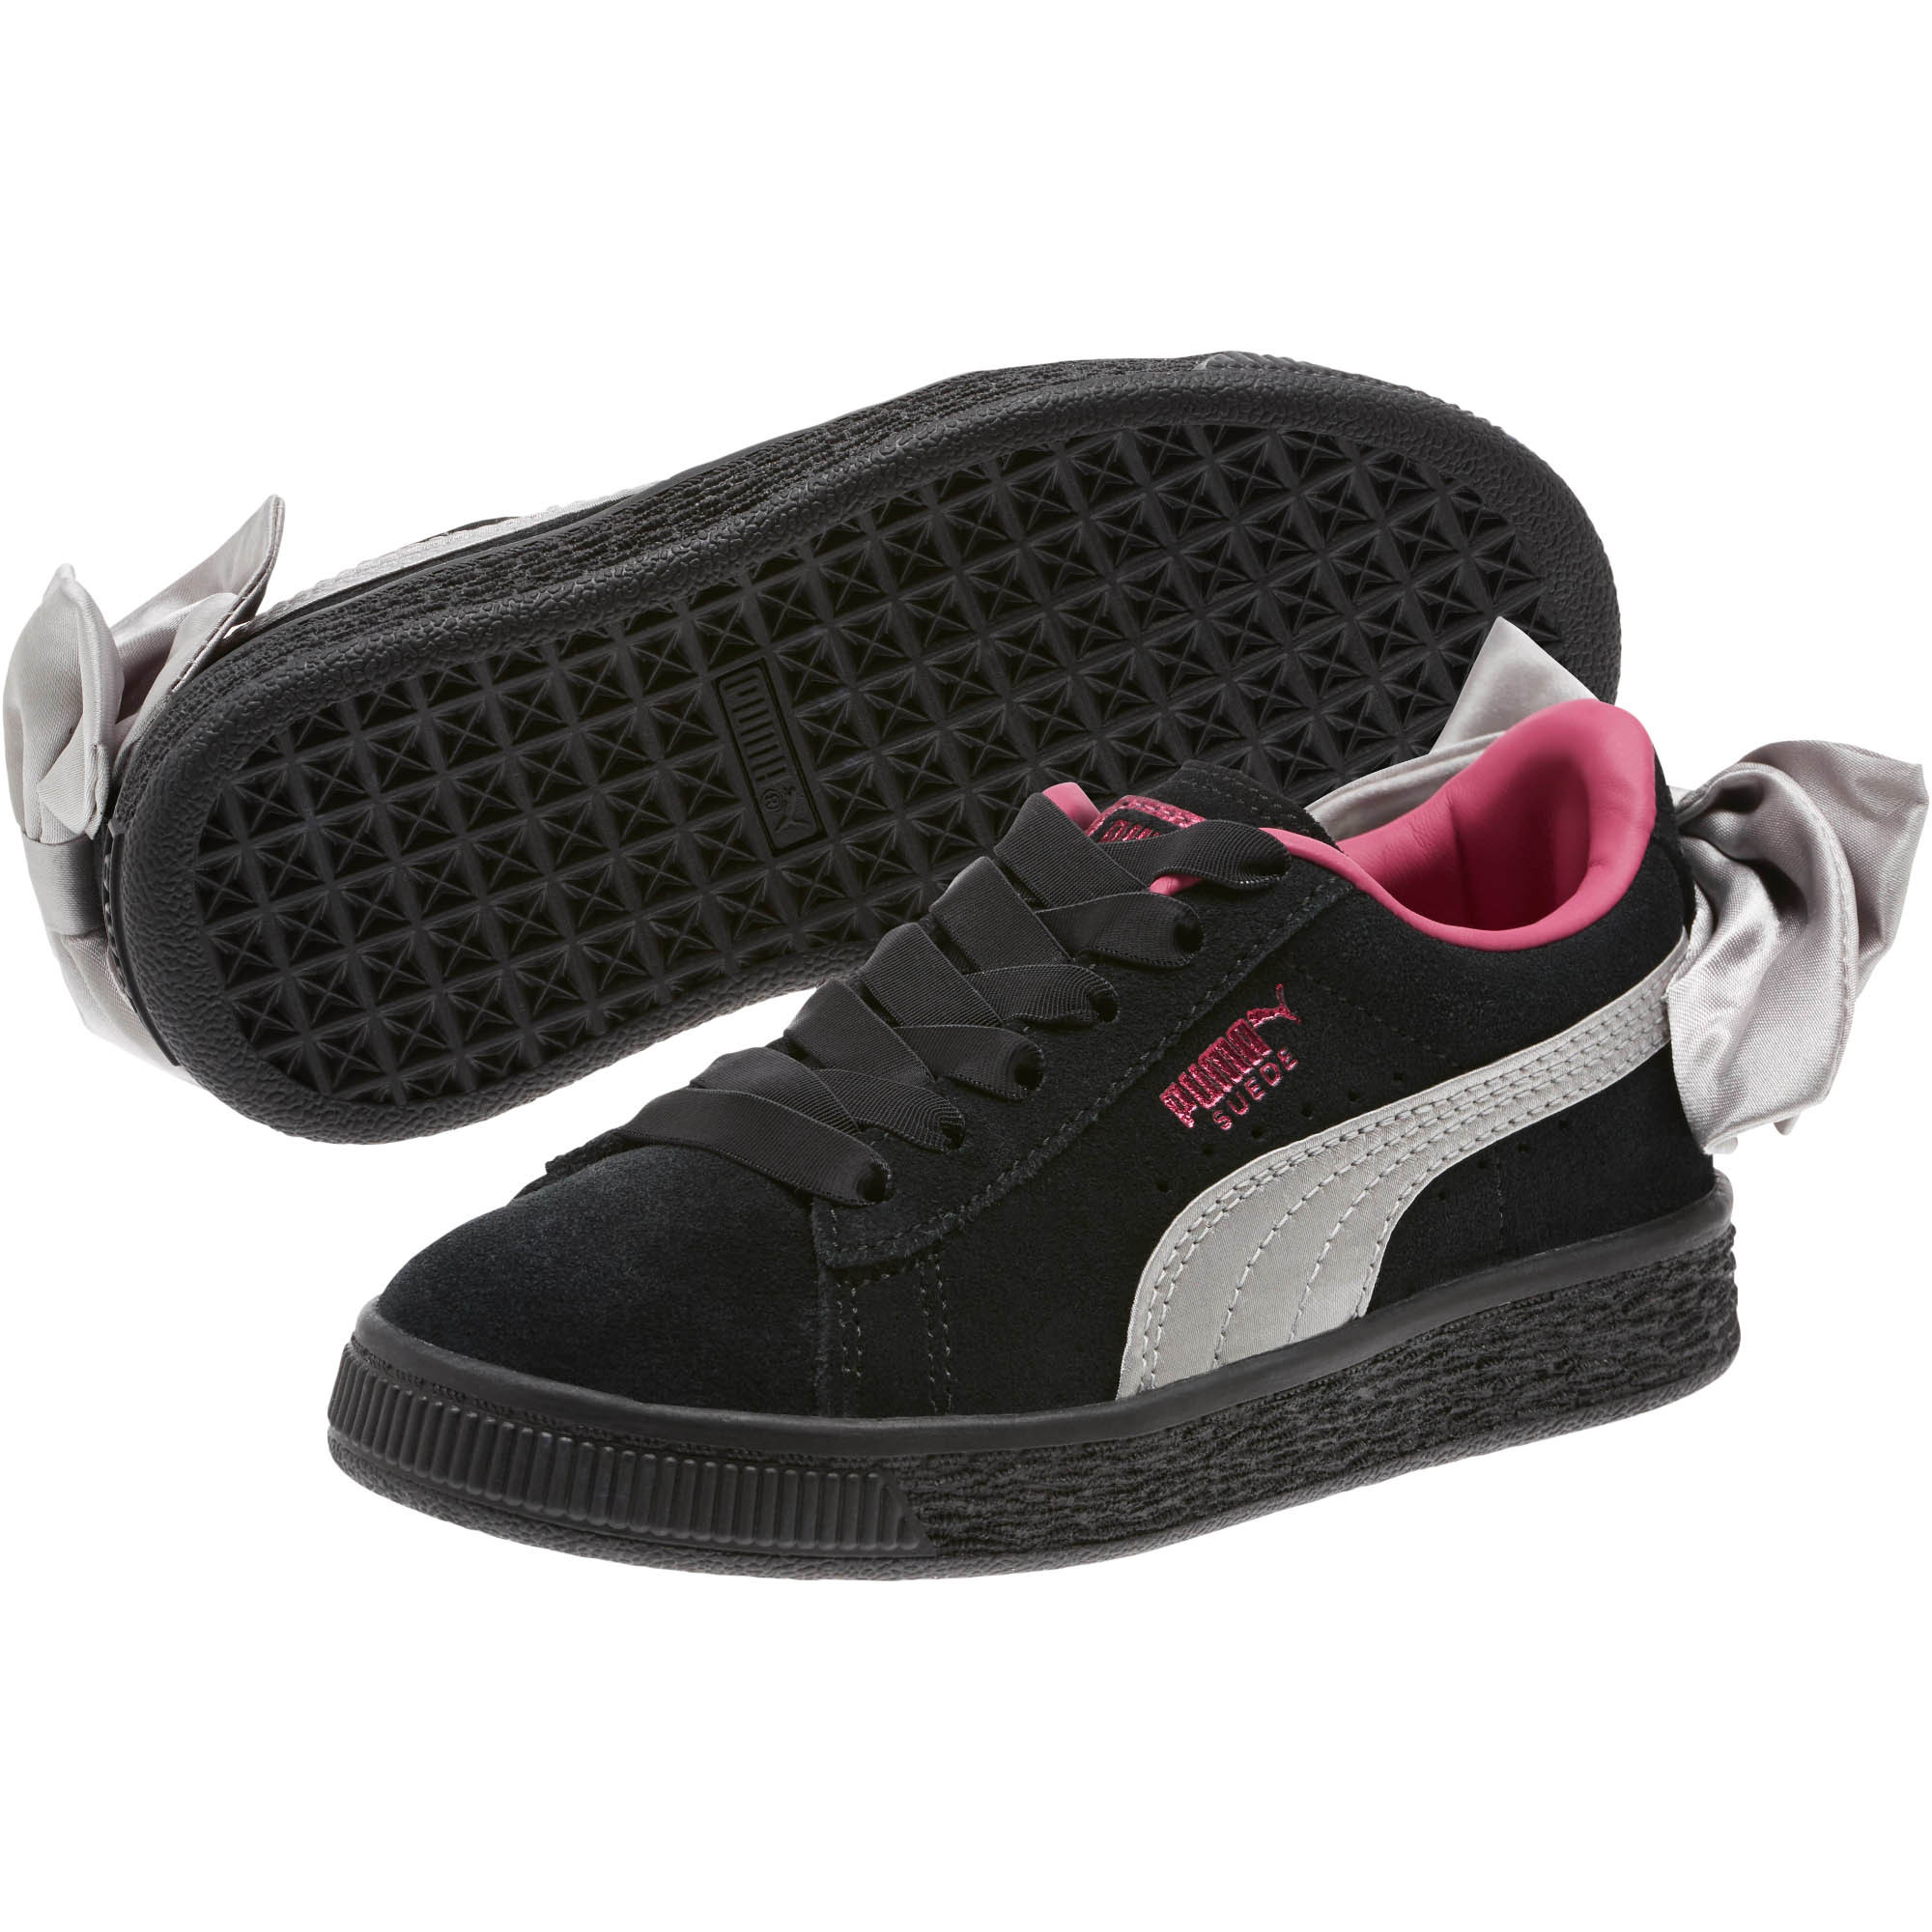 PUMA-Suede-Bow-AC-Little-Kids-039-Shoes-Girls-Shoe-Kids thumbnail 7